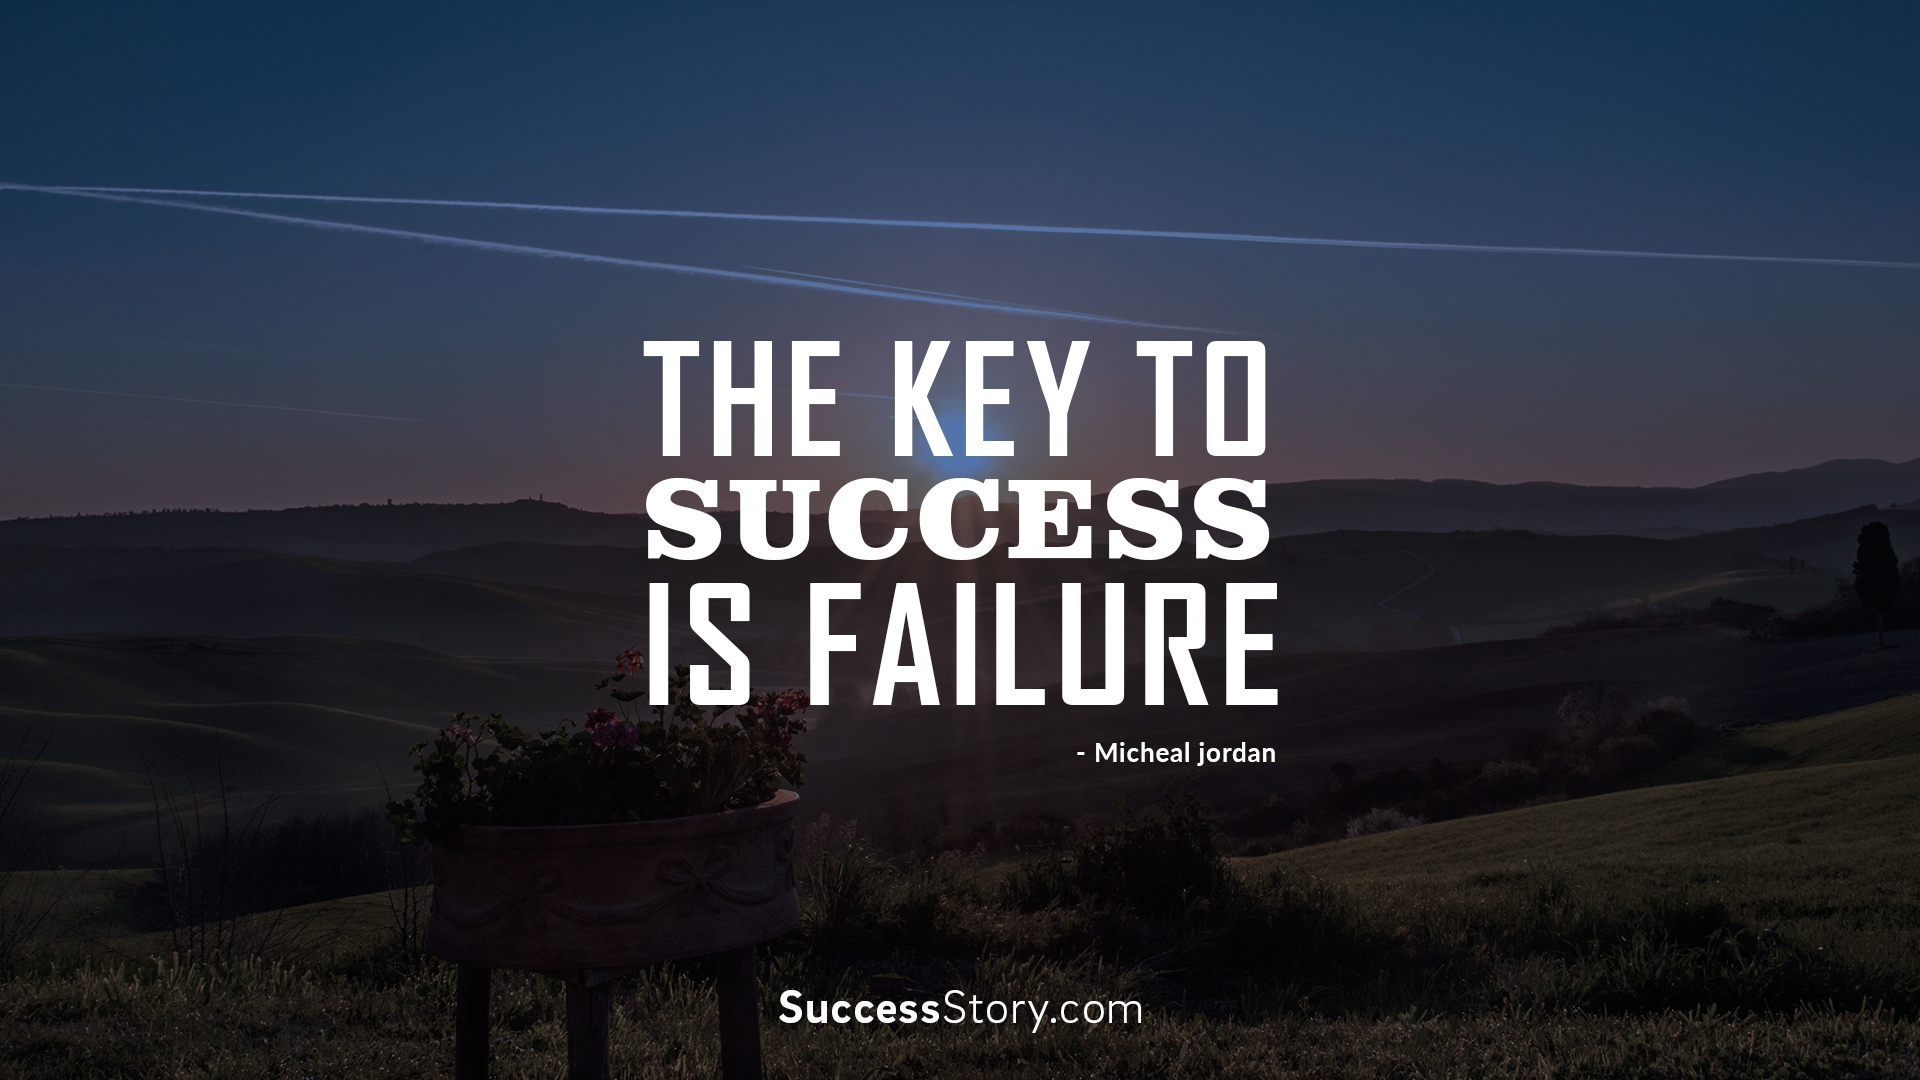 failure is the key to succeed It seems that failure tends to be more public than success or at least that's what we perceive it to be we fret it, we try to avoid it, and we question.